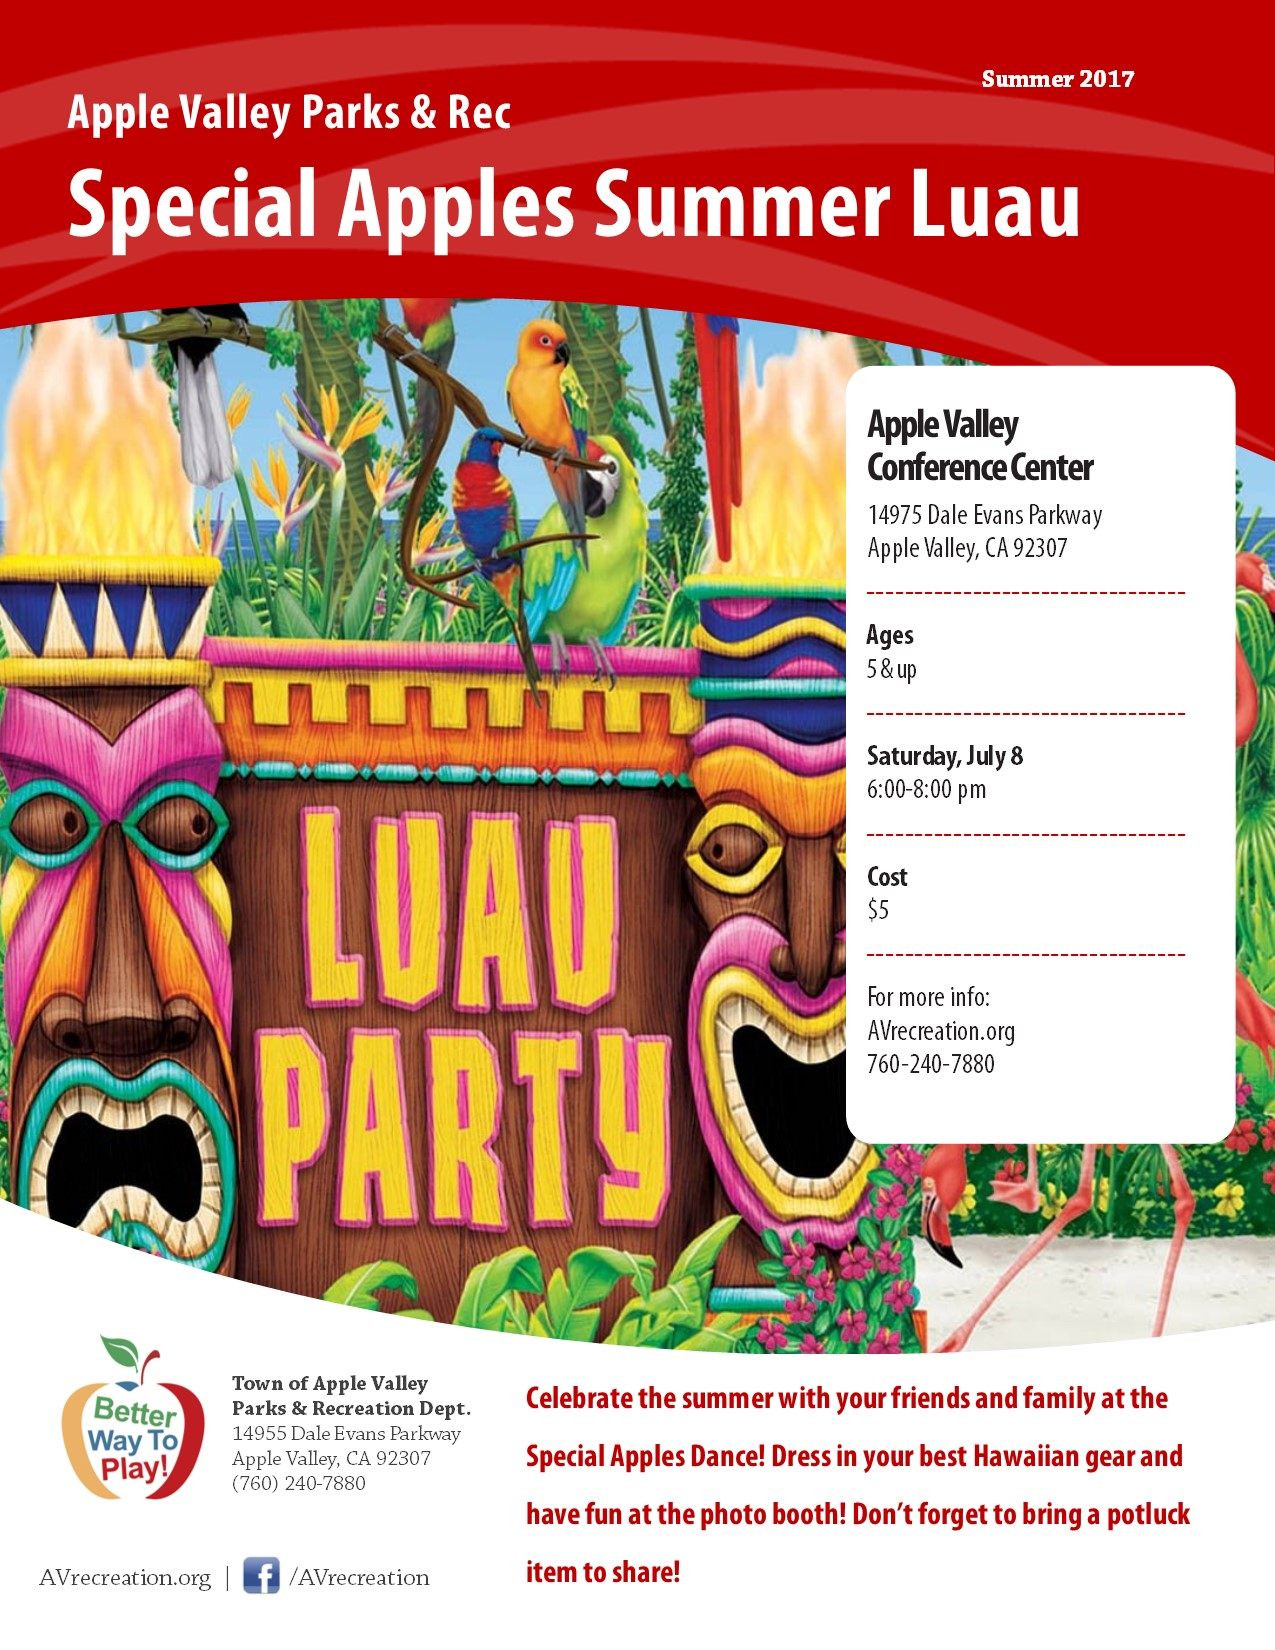 Special Apples Summer Luau